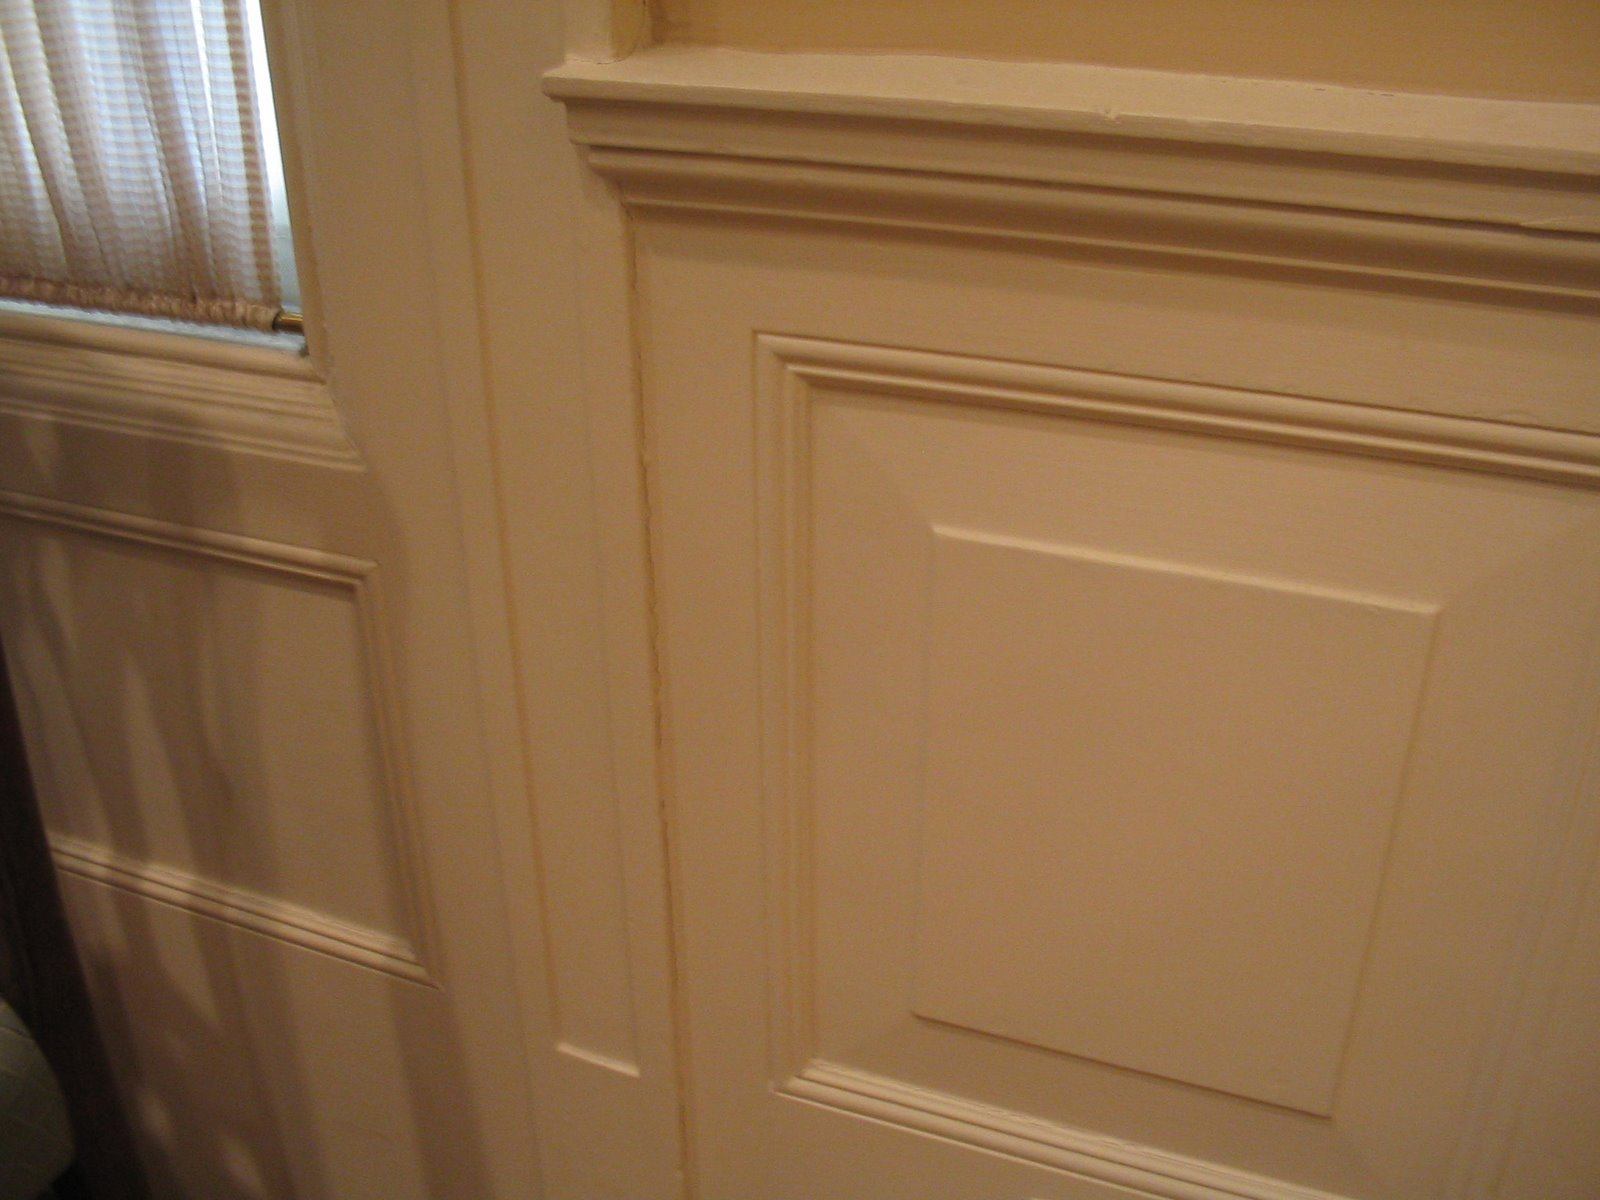 Cimaise Bois Castorama : Floor to Ceiling Wainscoting Panels